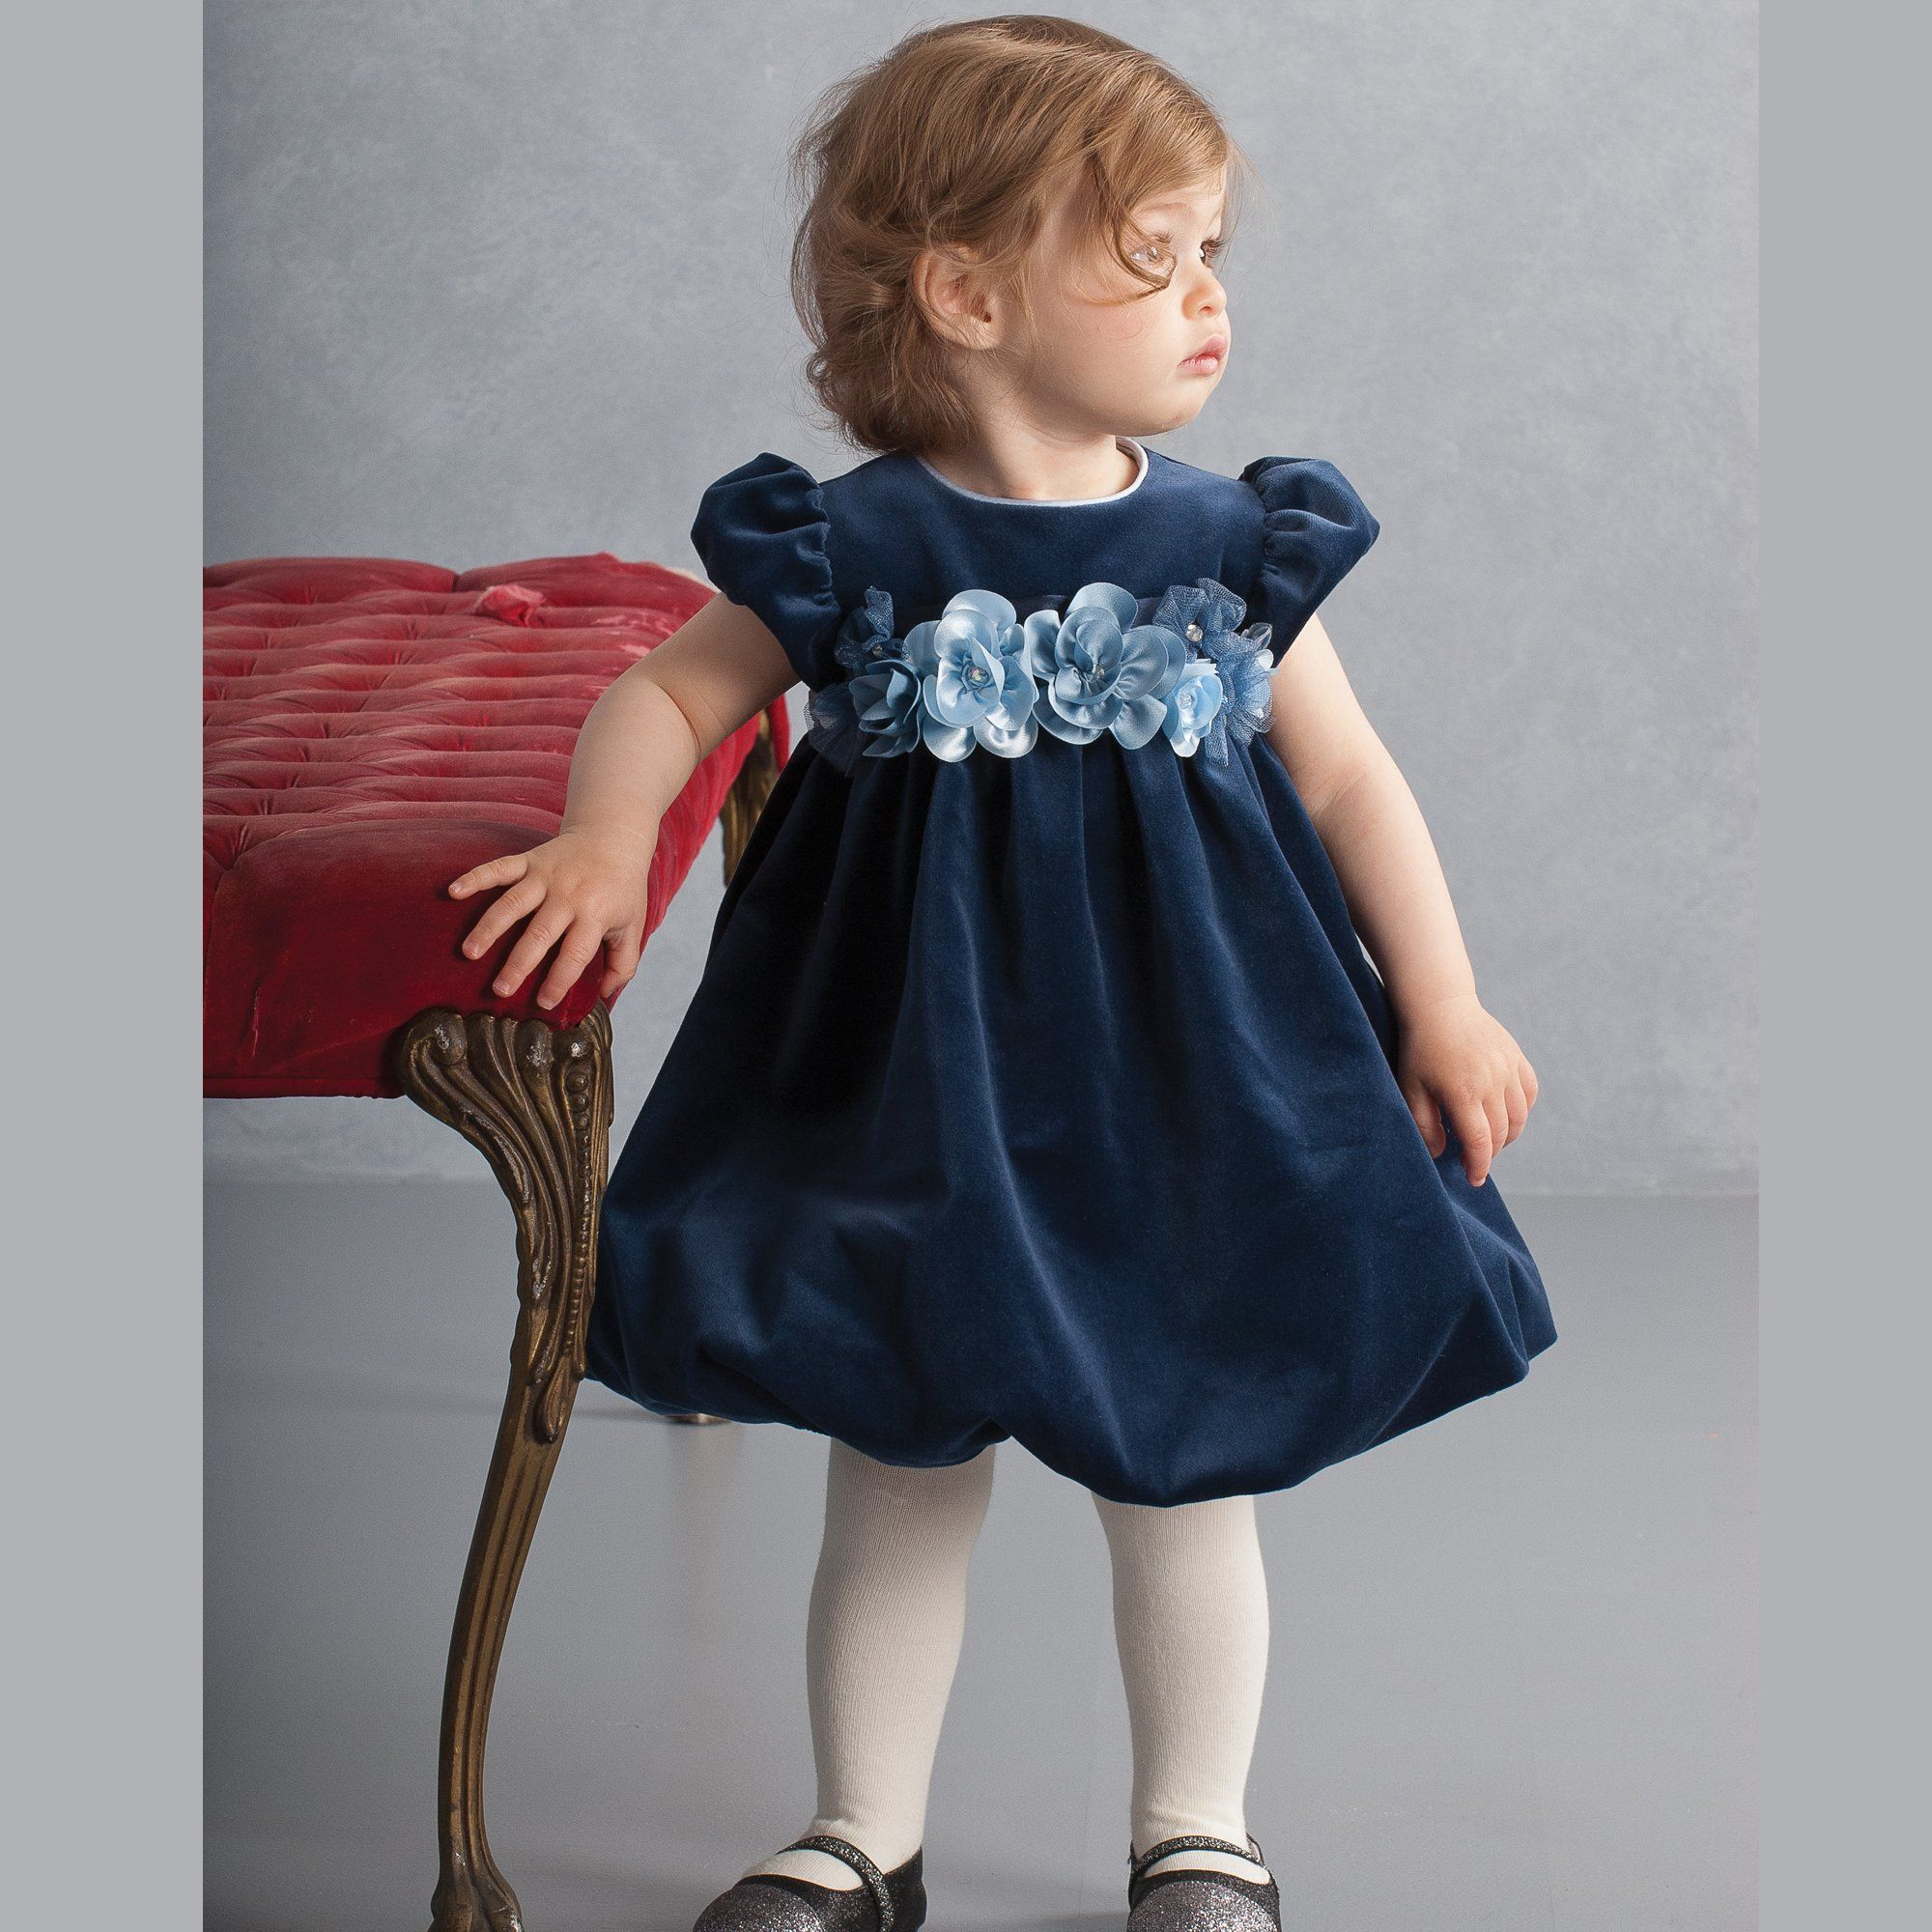 Discover Women's Navy Blue Dresses, Juniors Navy Blue Dresses and Kids Navy Blue Dresses at Macy's. Macy's Presents: The Edit - A curated mix of fashion and inspiration Check It Out Free Shipping with $75 purchase + Free Store Pickup.